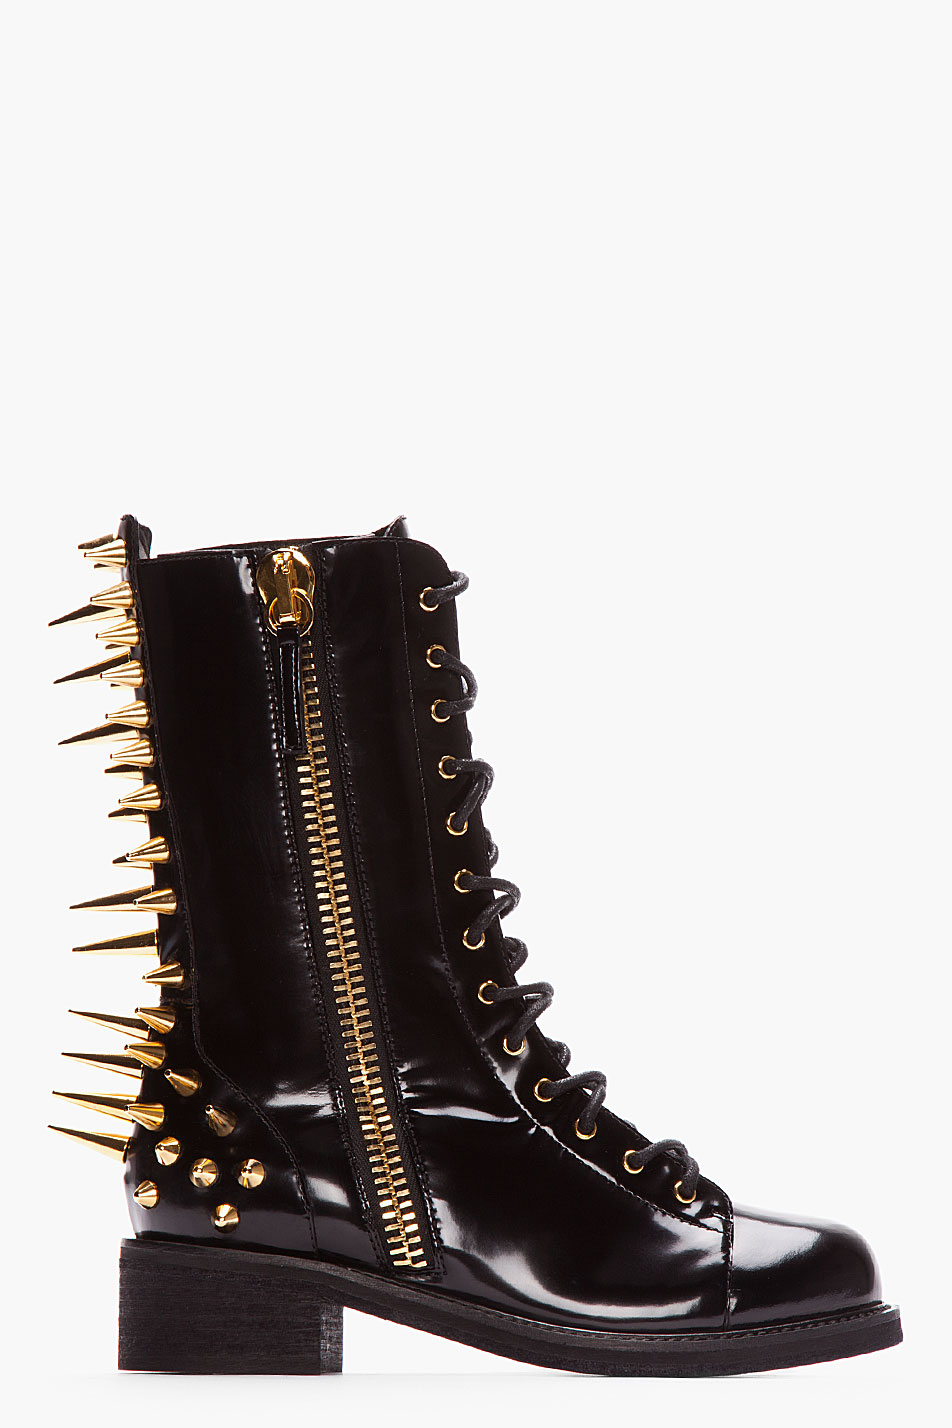 b86211f0be17b Giuseppe Zanotti Black Patent Leather Spiked Blok 40 Boots in Black ...